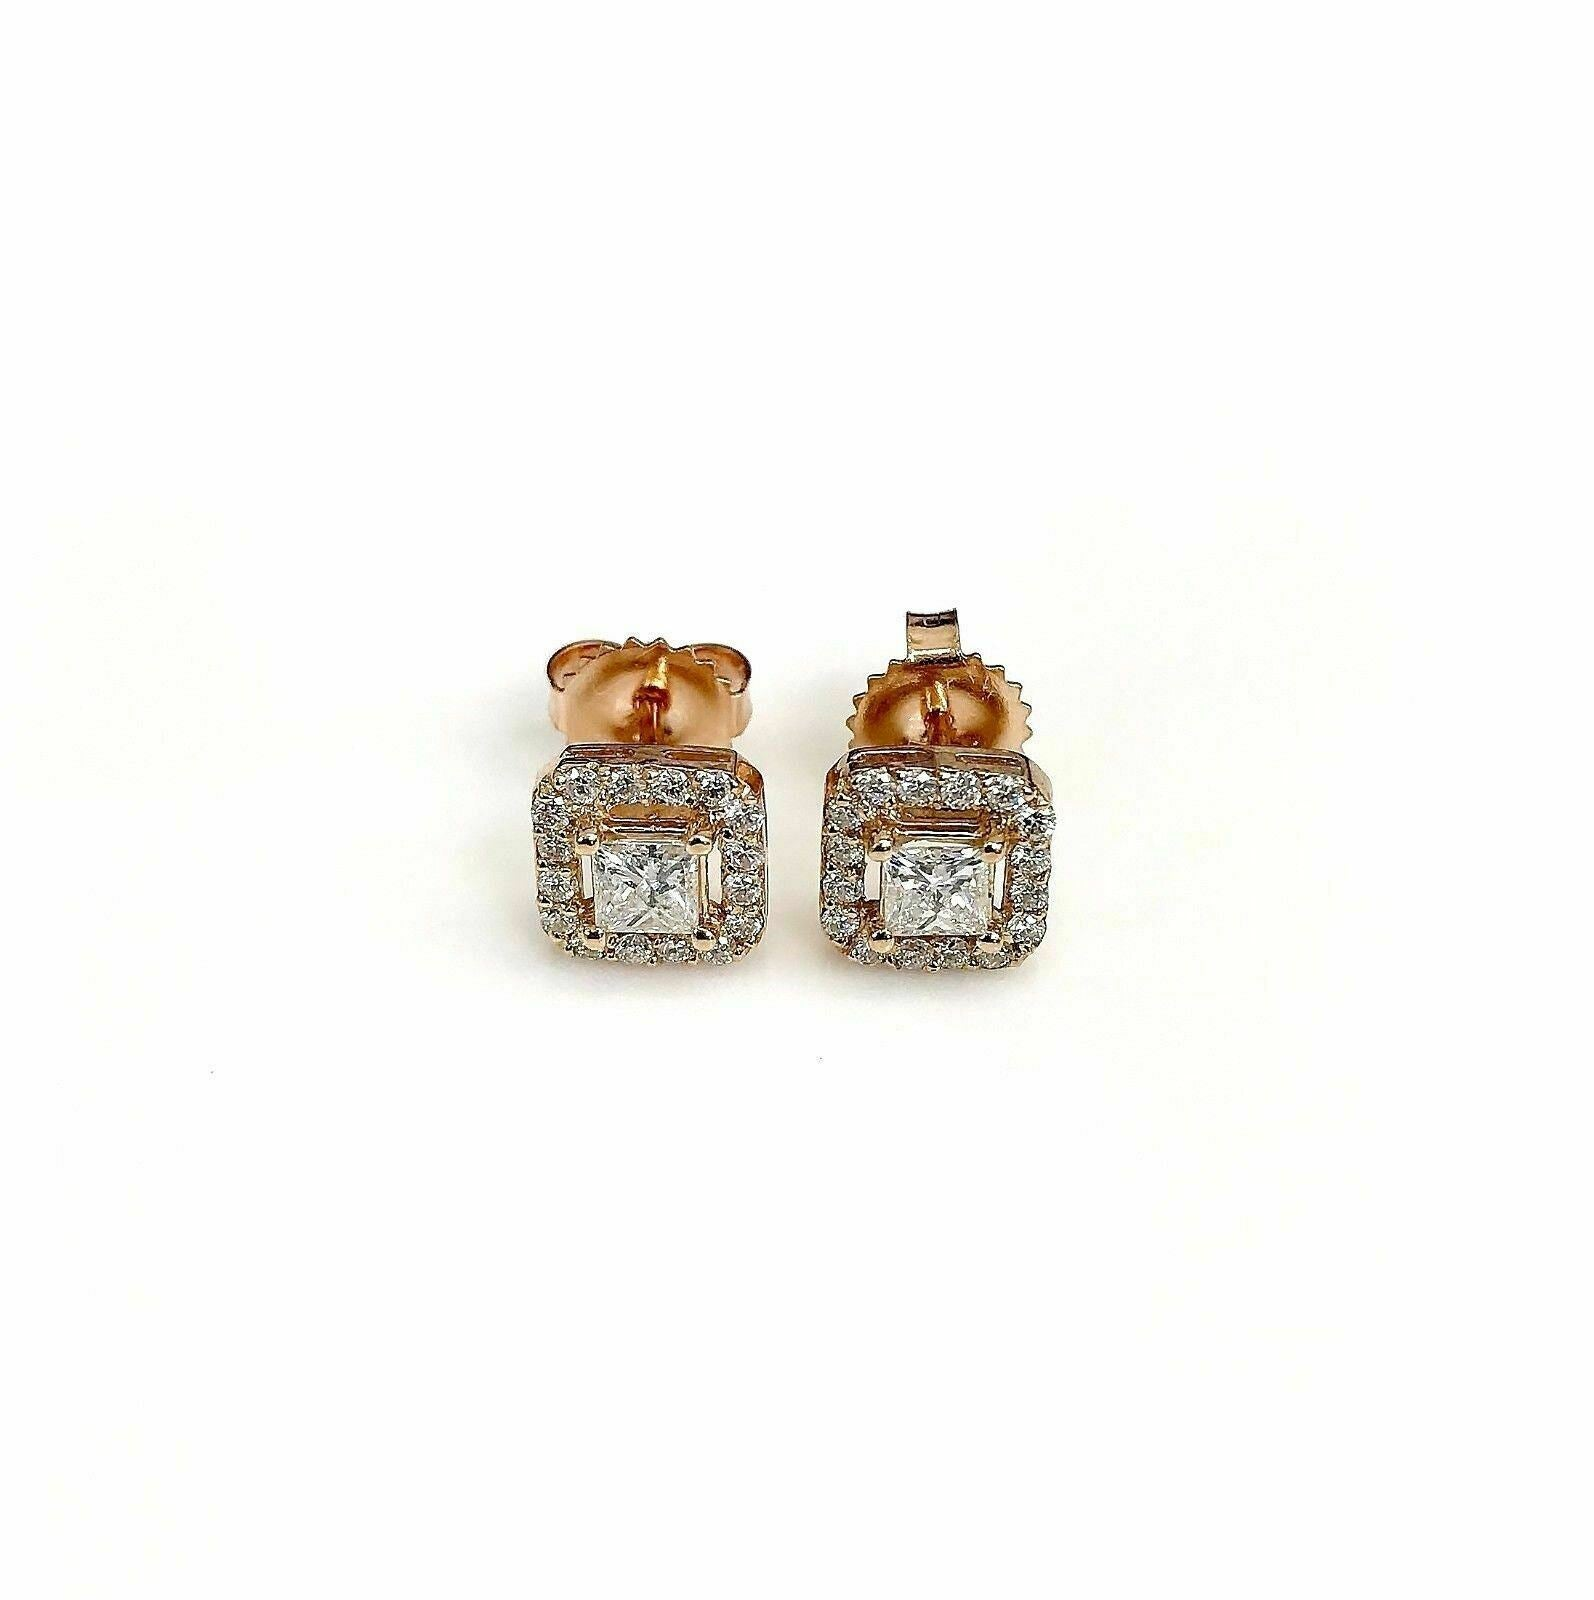 0.85 Carats t.w. Princess and Round Diamond Halo Earrings 14K Pink Rose Gold New